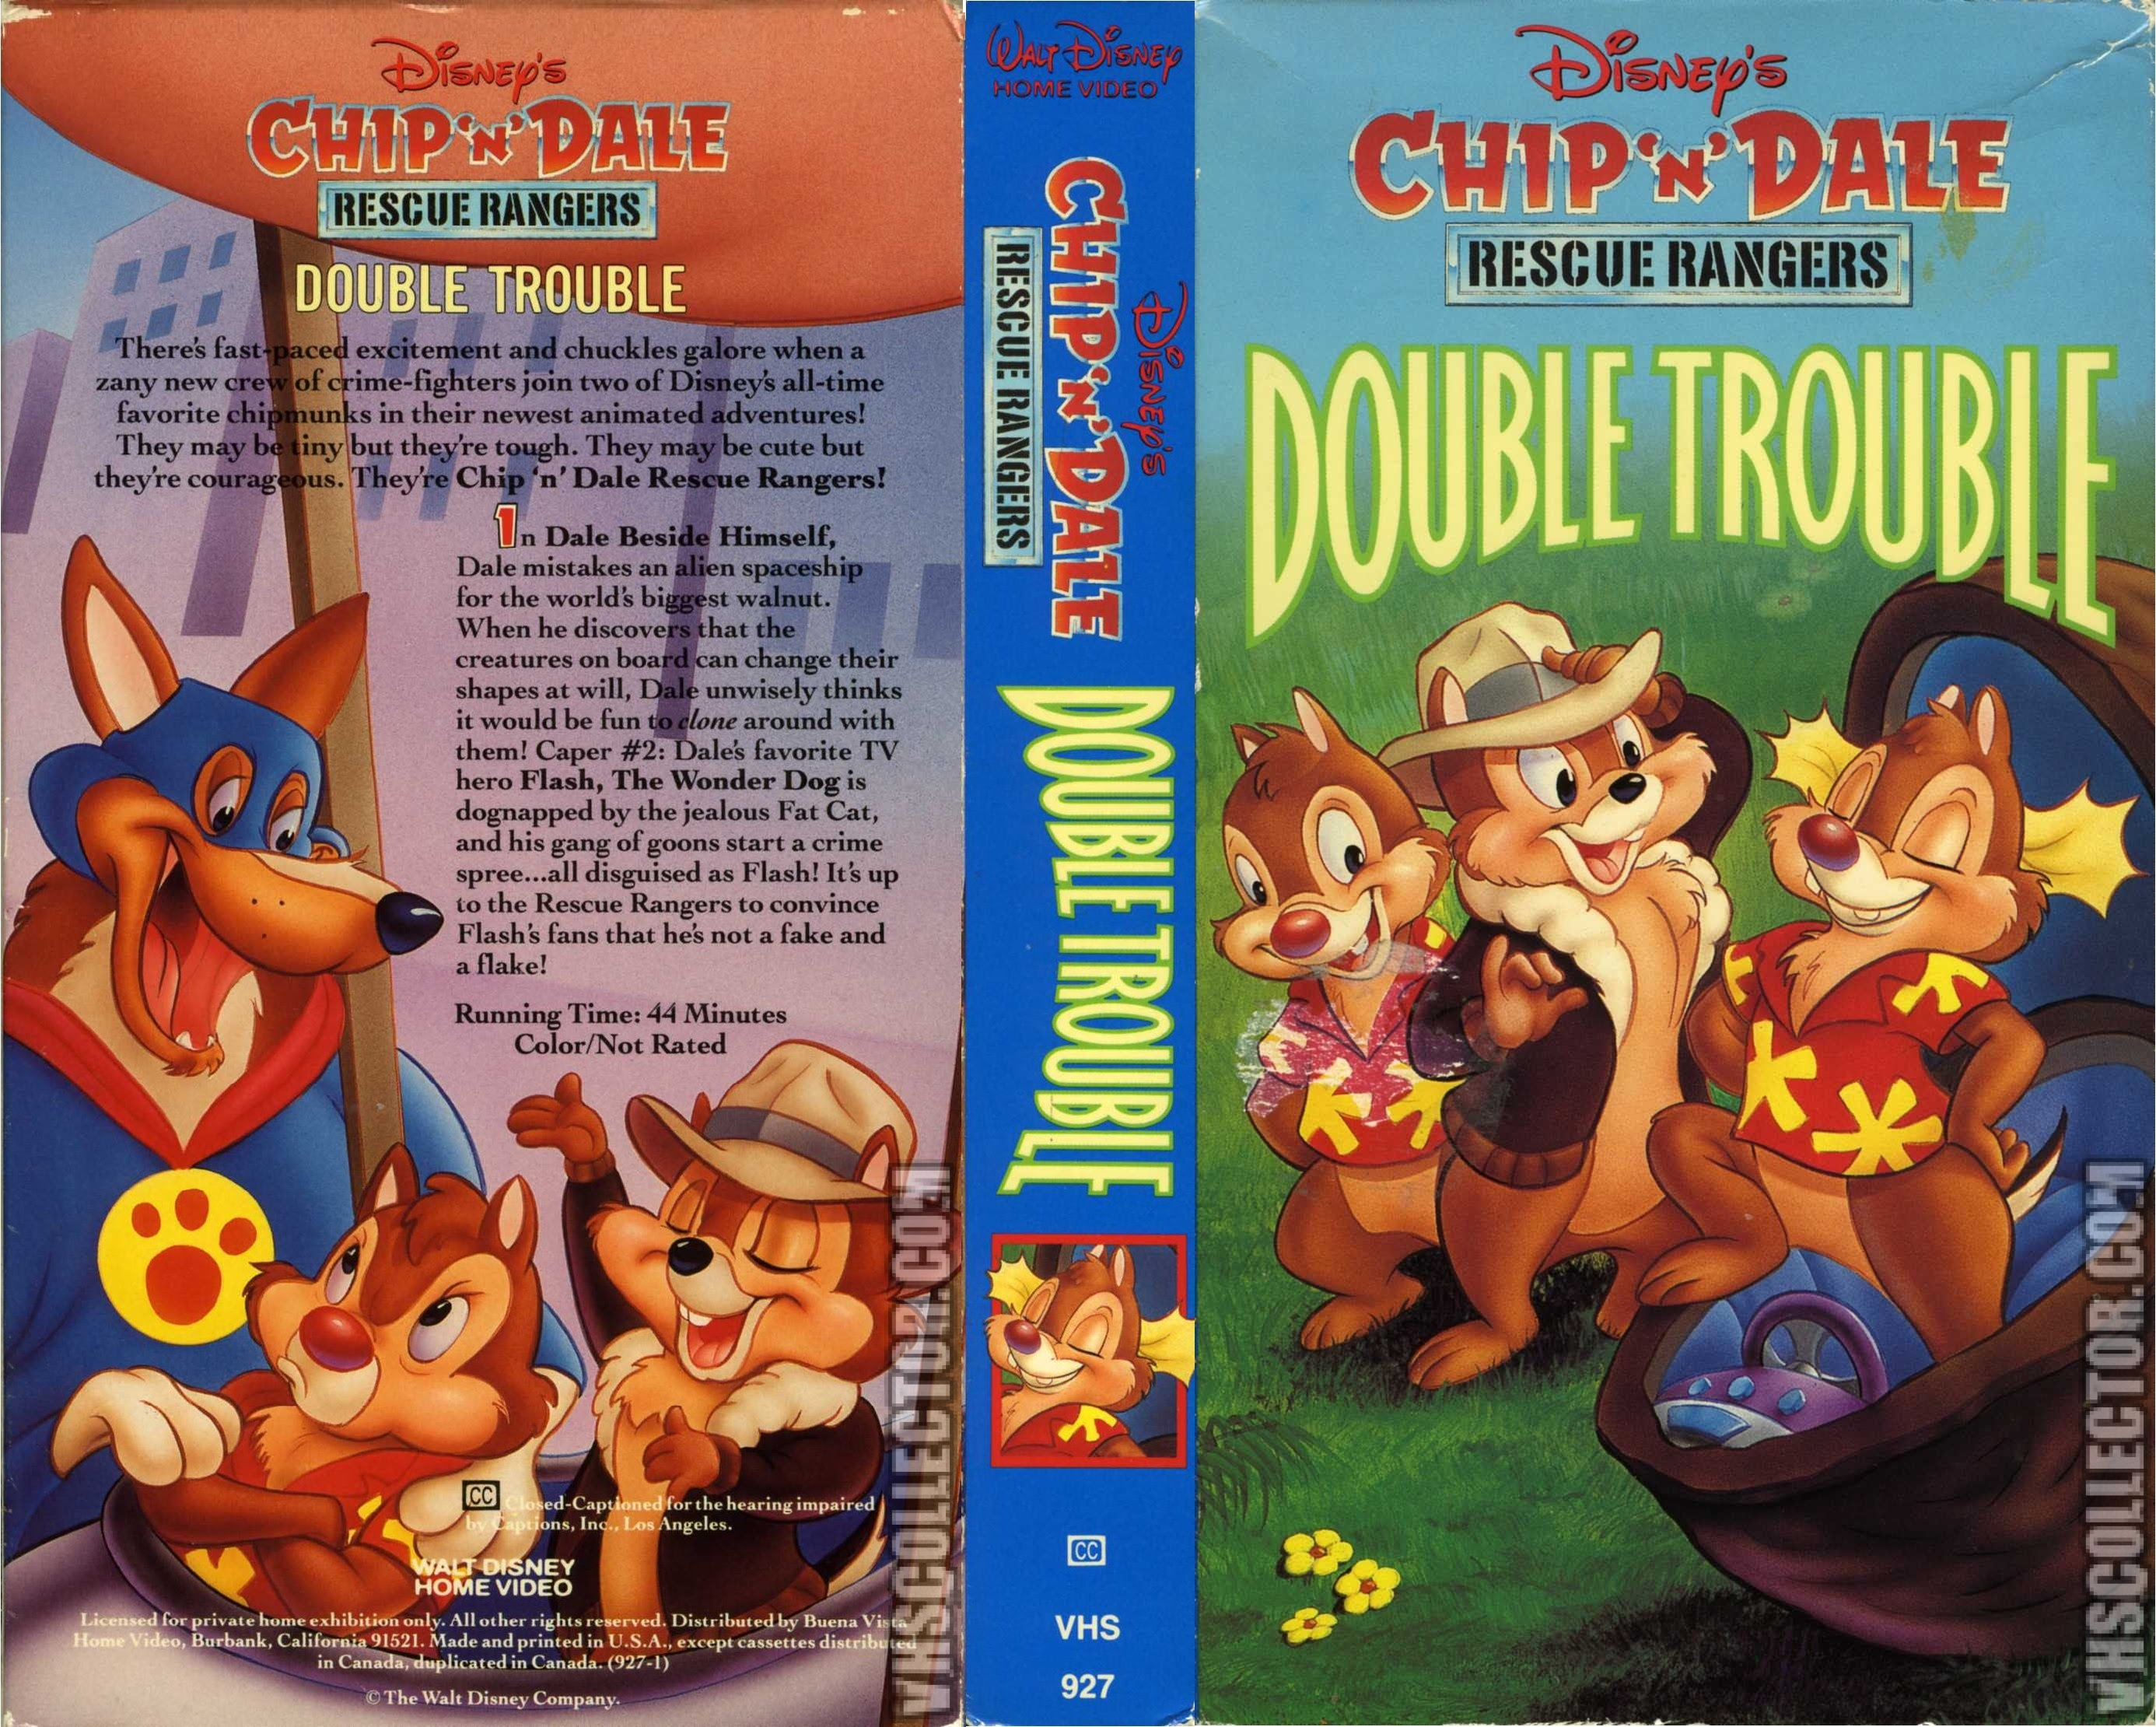 HQ Chip 'n Dale Rescue Rangers Wallpapers | File 982.33Kb